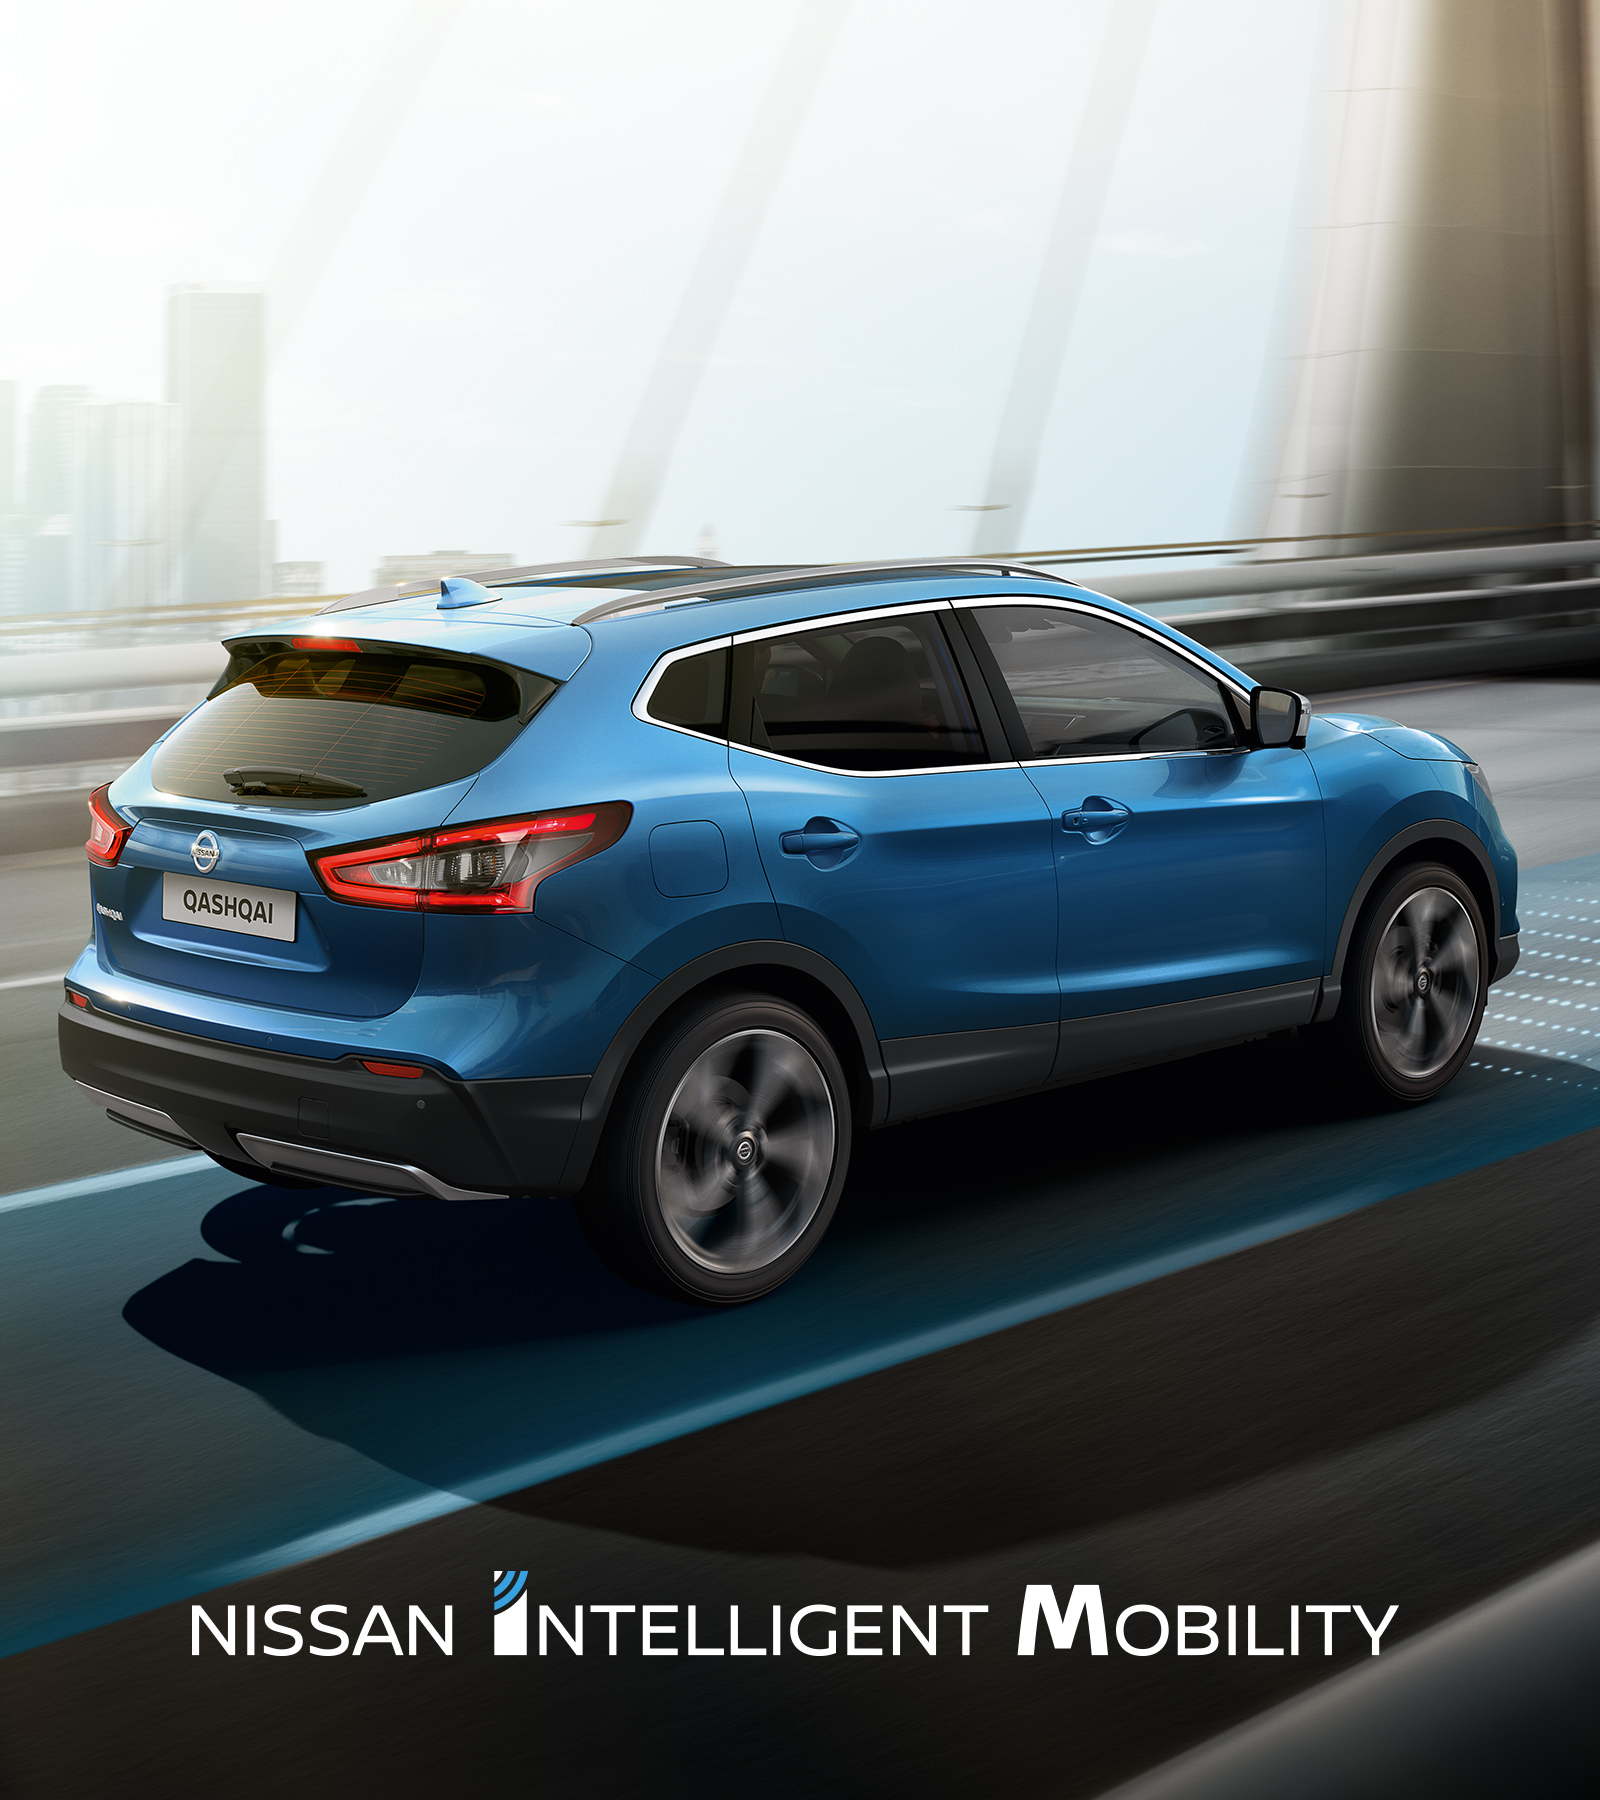 Nissan Qashqai driving in the city with Nissan Intelligent Mobility logo